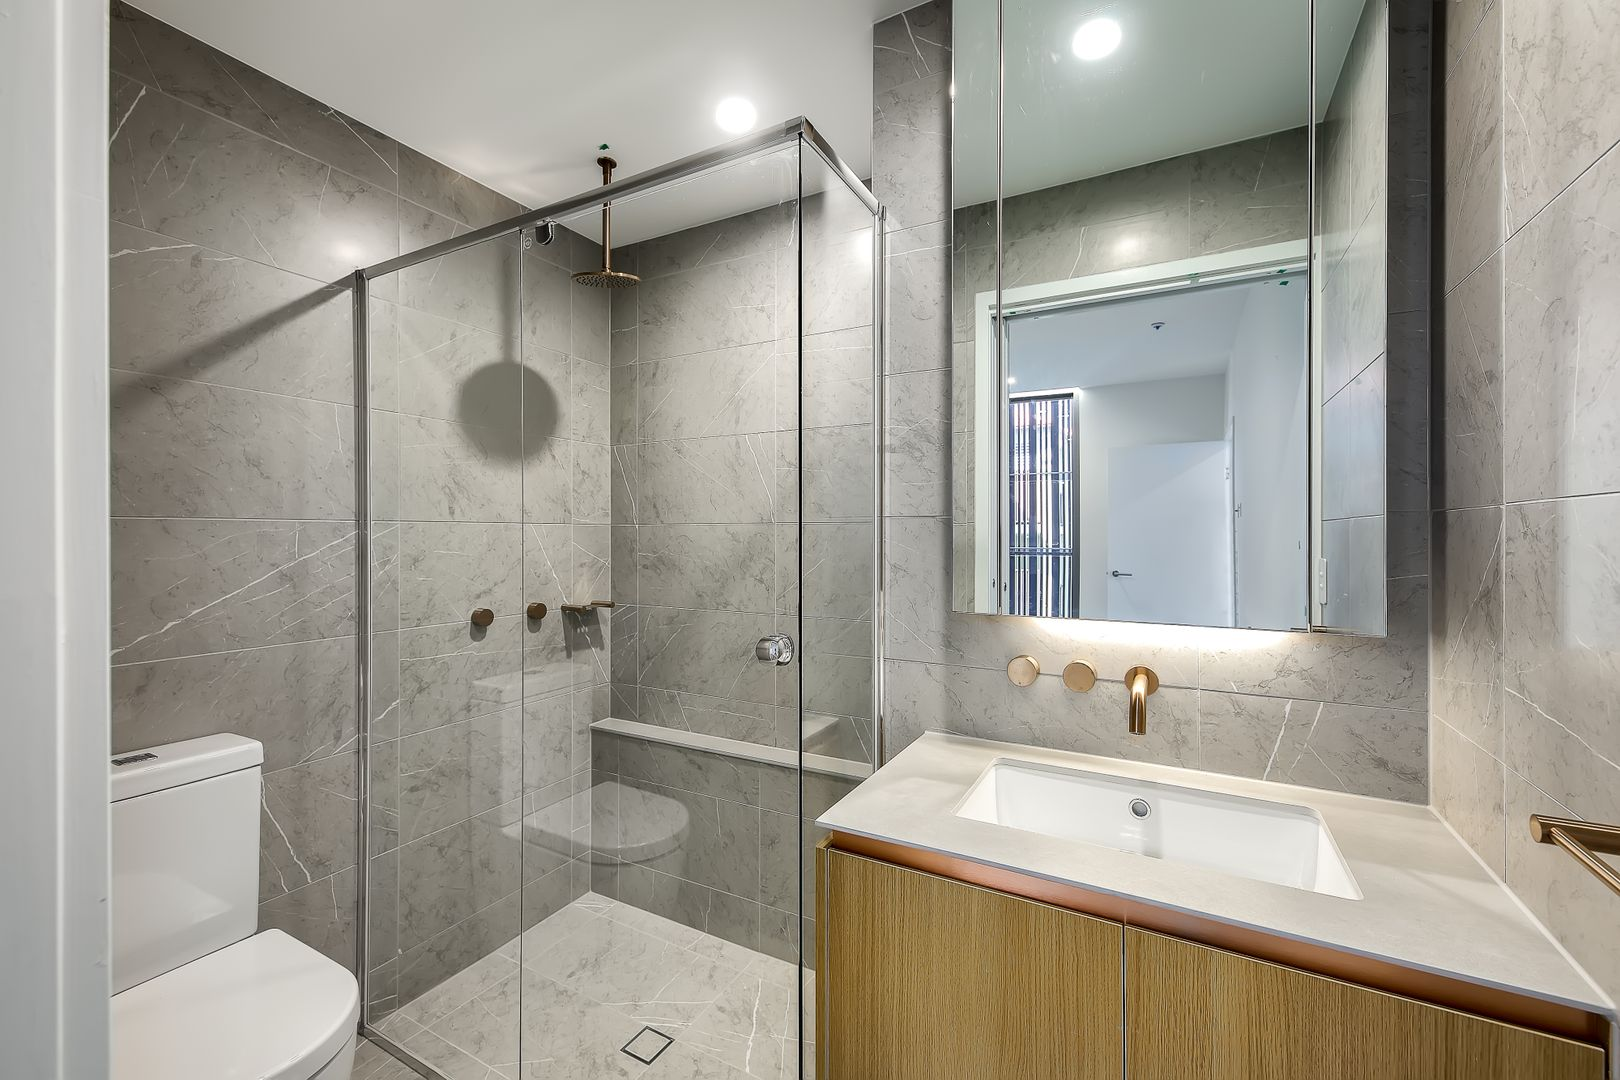 7062/59 O'Connell St, Kangaroo Point QLD 4169, Image 1